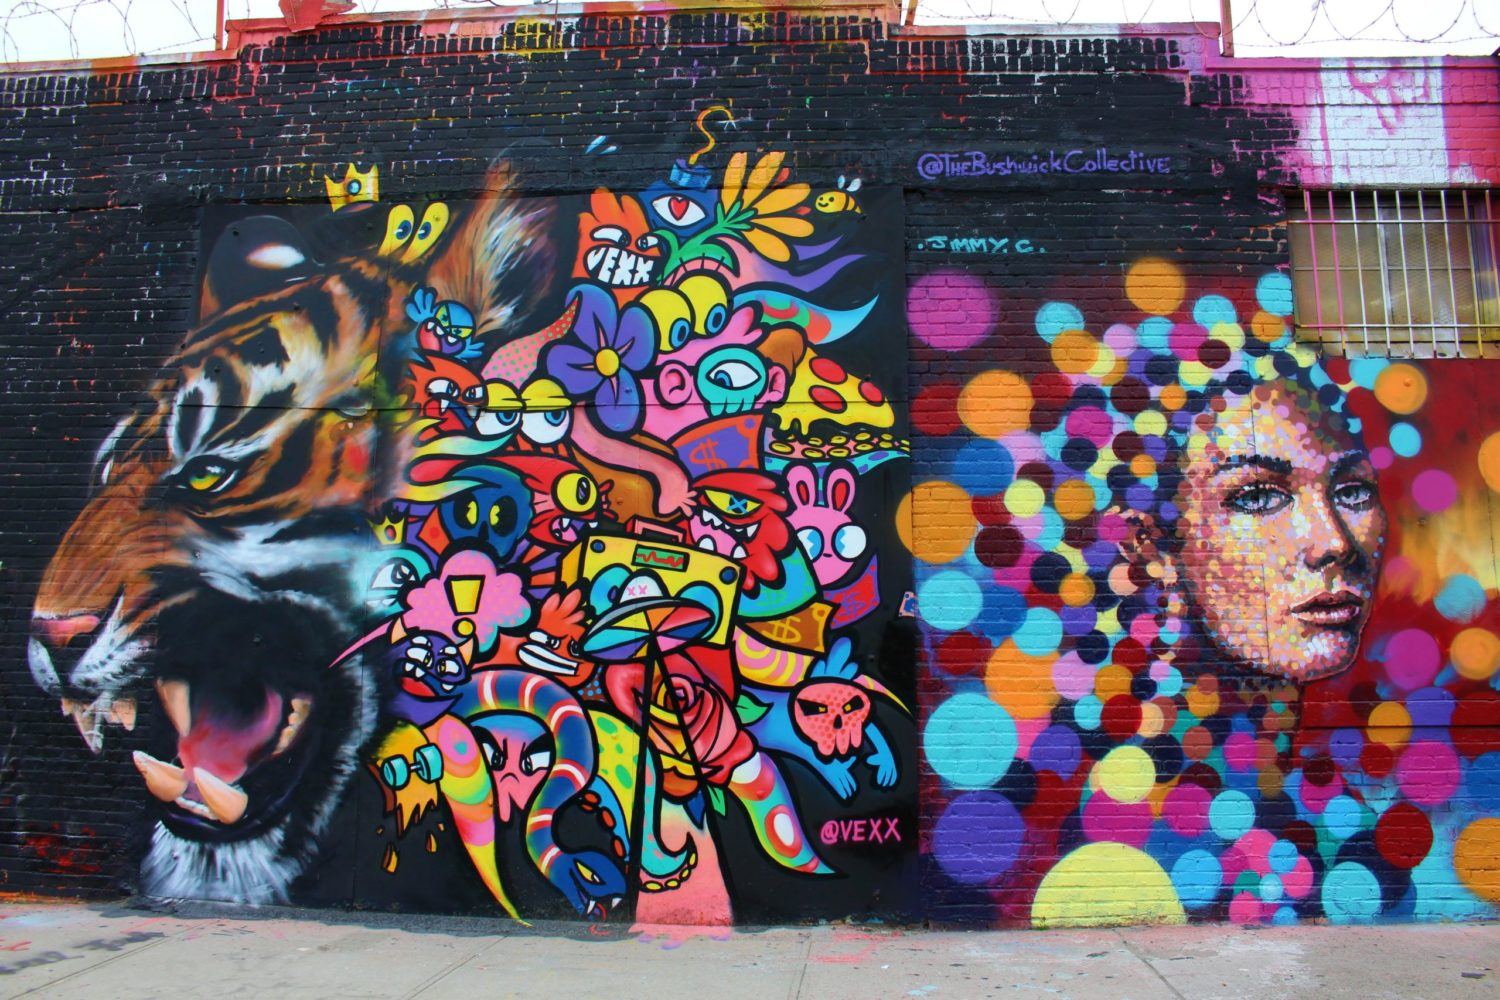 Itinerario di graffiti e street art a New York